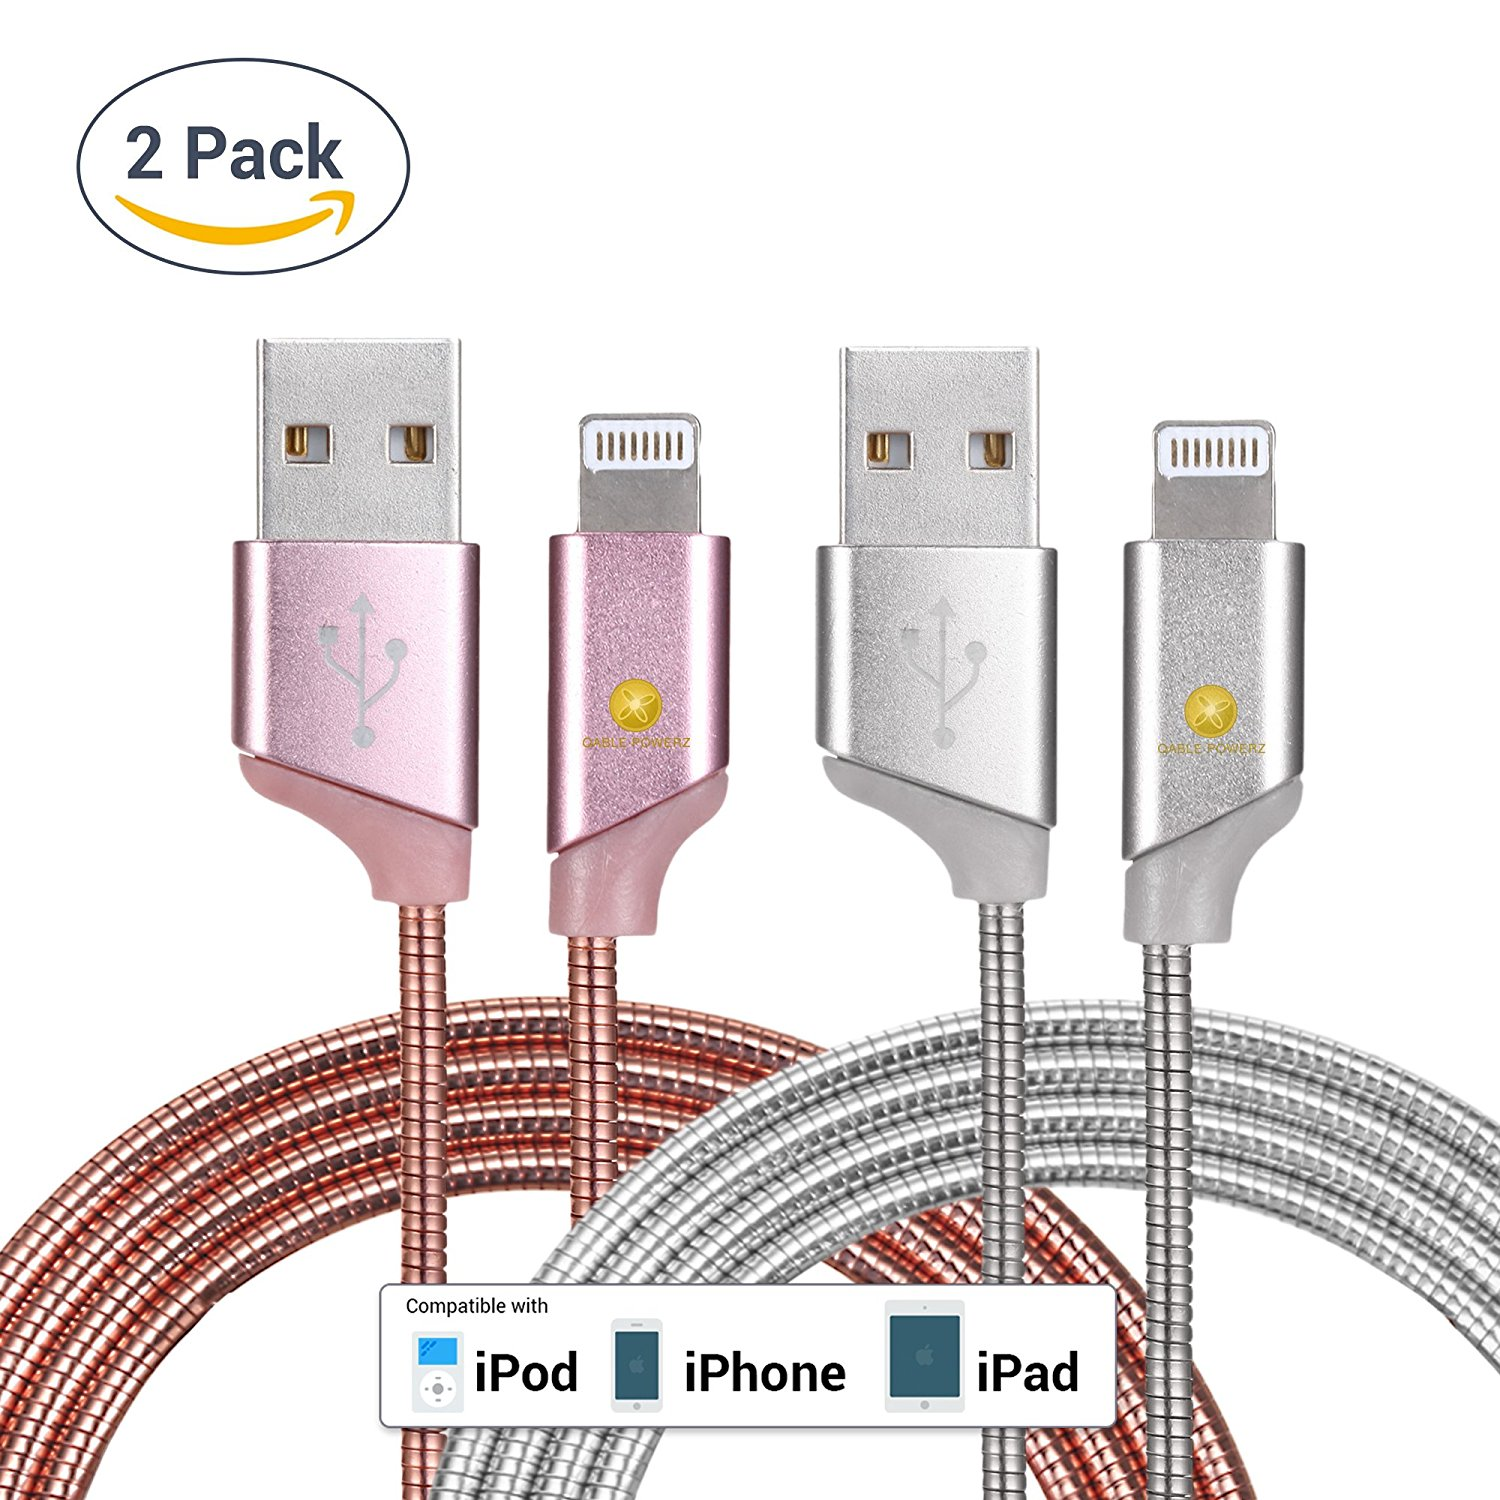 2pk New Ultra Super-Fast Heavy Duty 3Ft (1M) 2pk 8-Pin Lightning Metal Spring Cord Charging Cable High Speed USB 3.0 Sync Cable for iPhone 7, 6, 6 Plus – Pink Silver